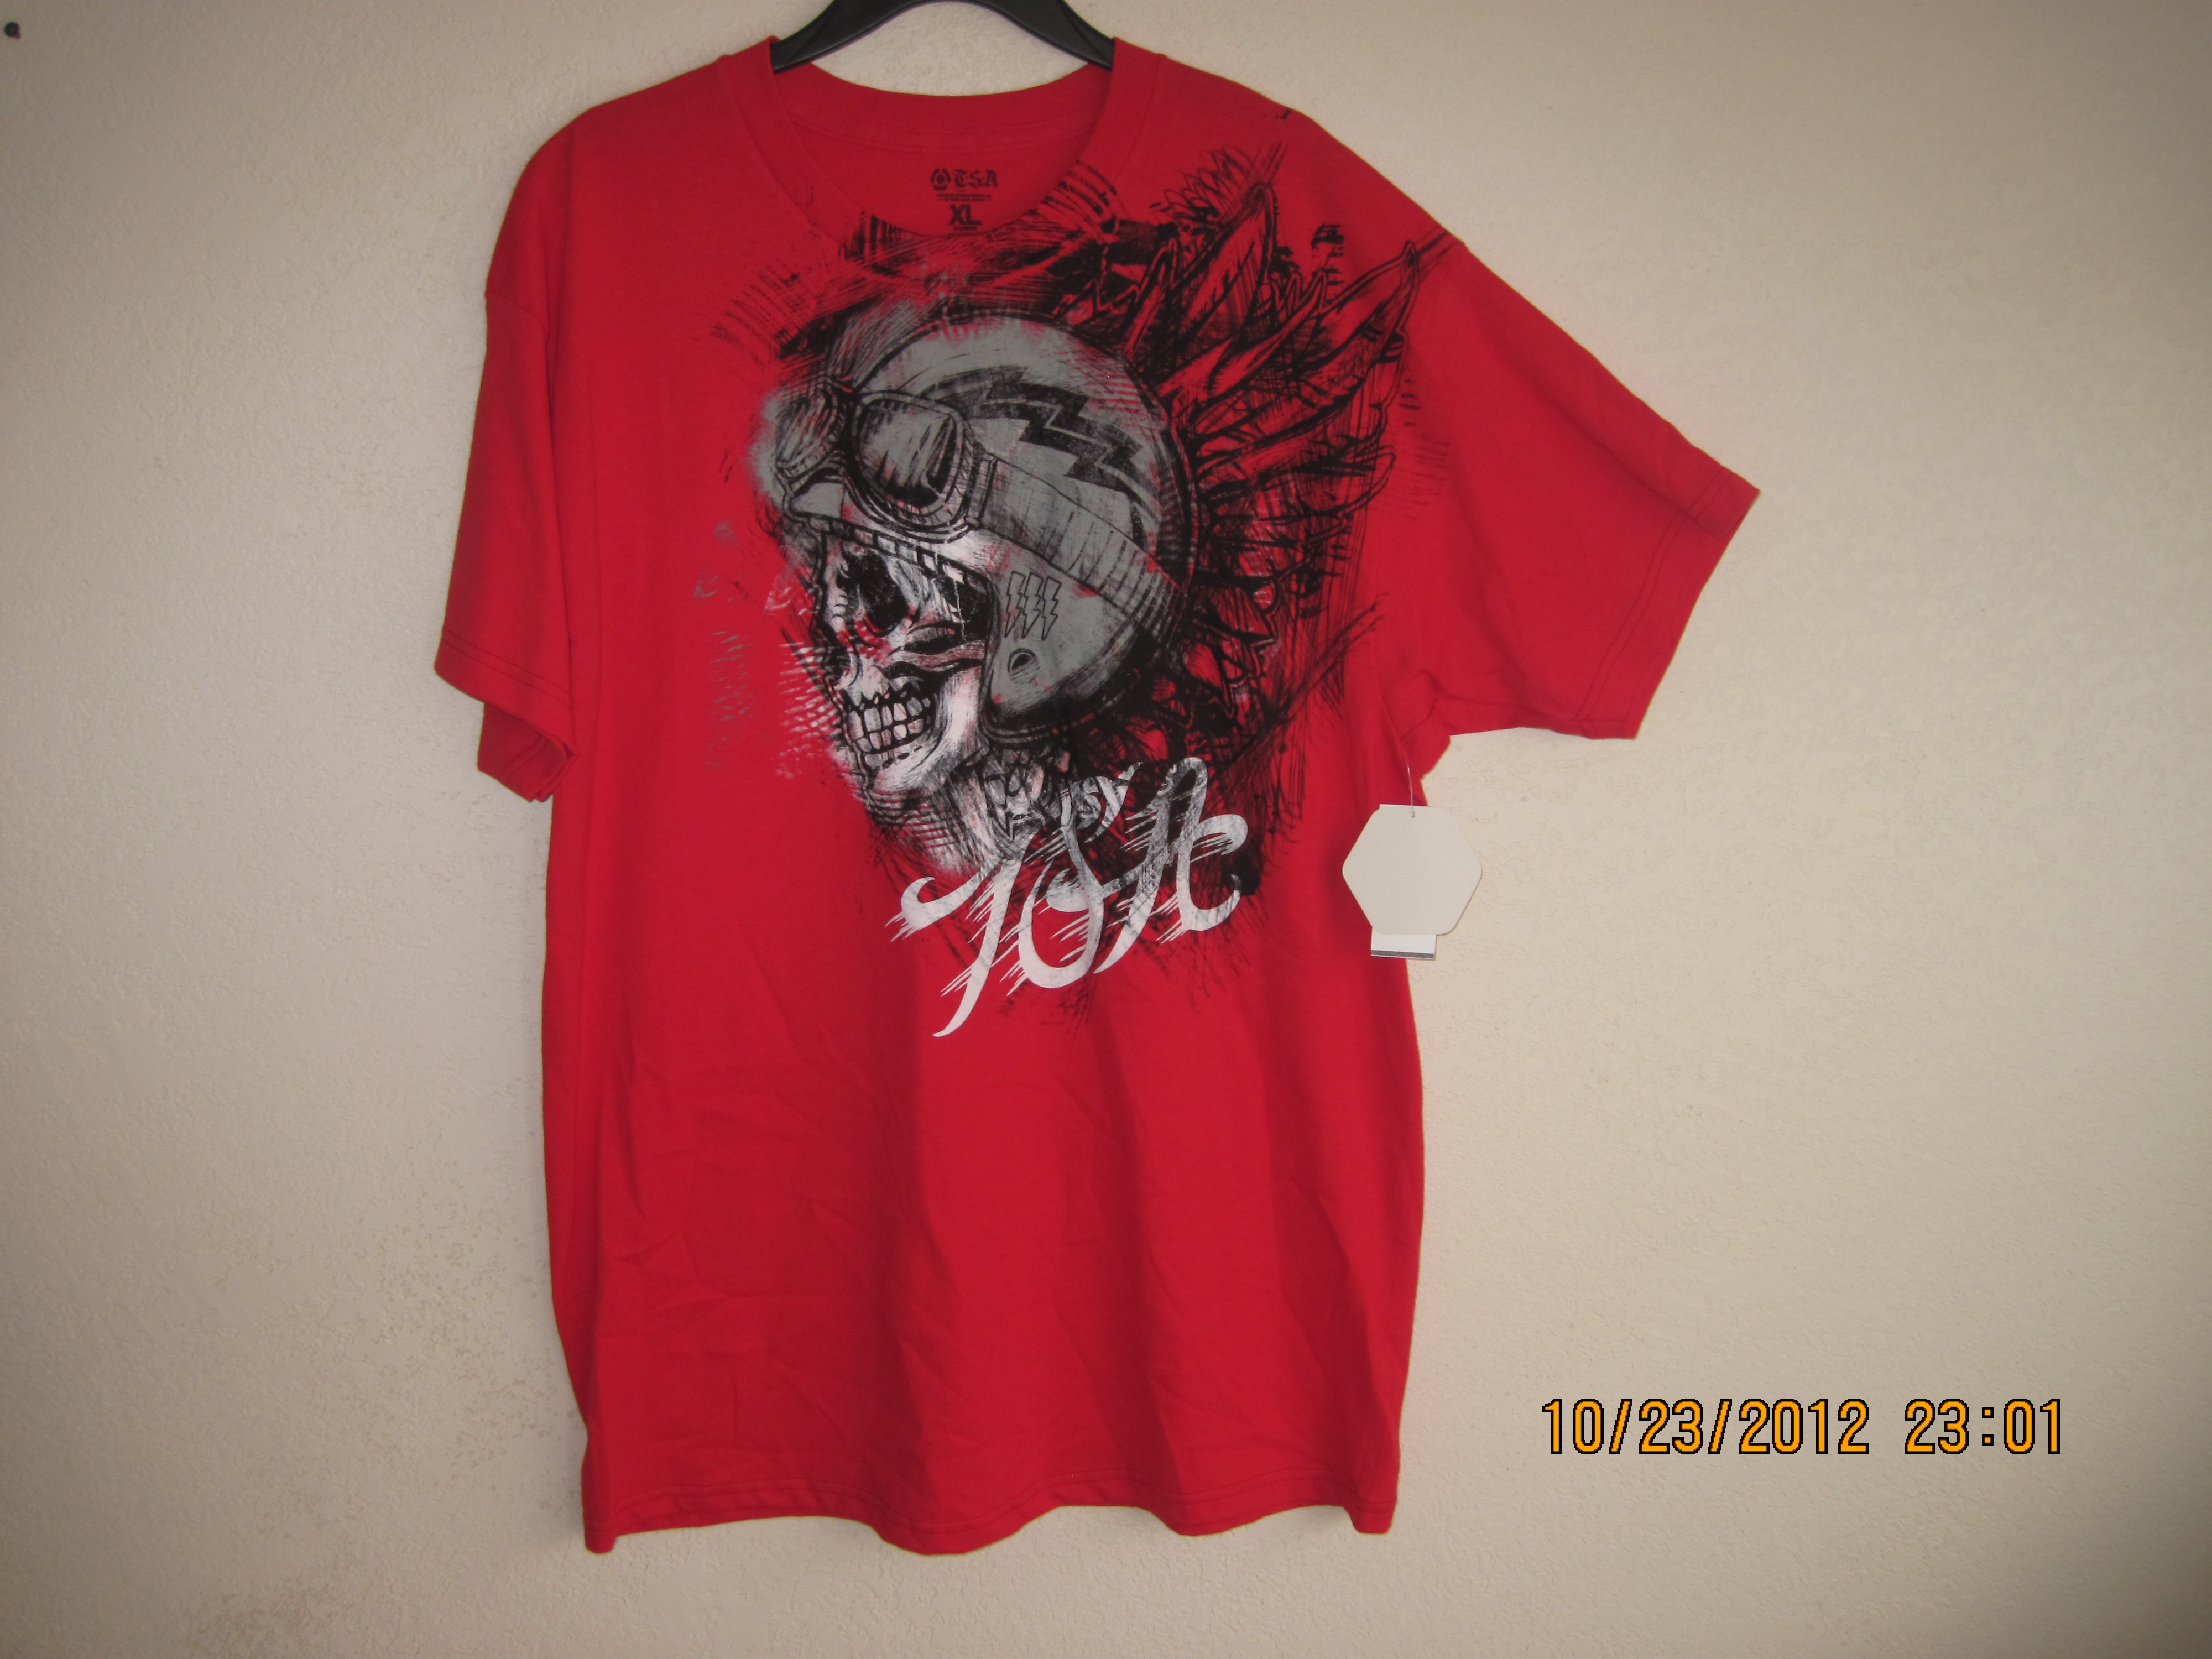 T.S.A MX Sz XL T-Shirt with Skull on front (Red)